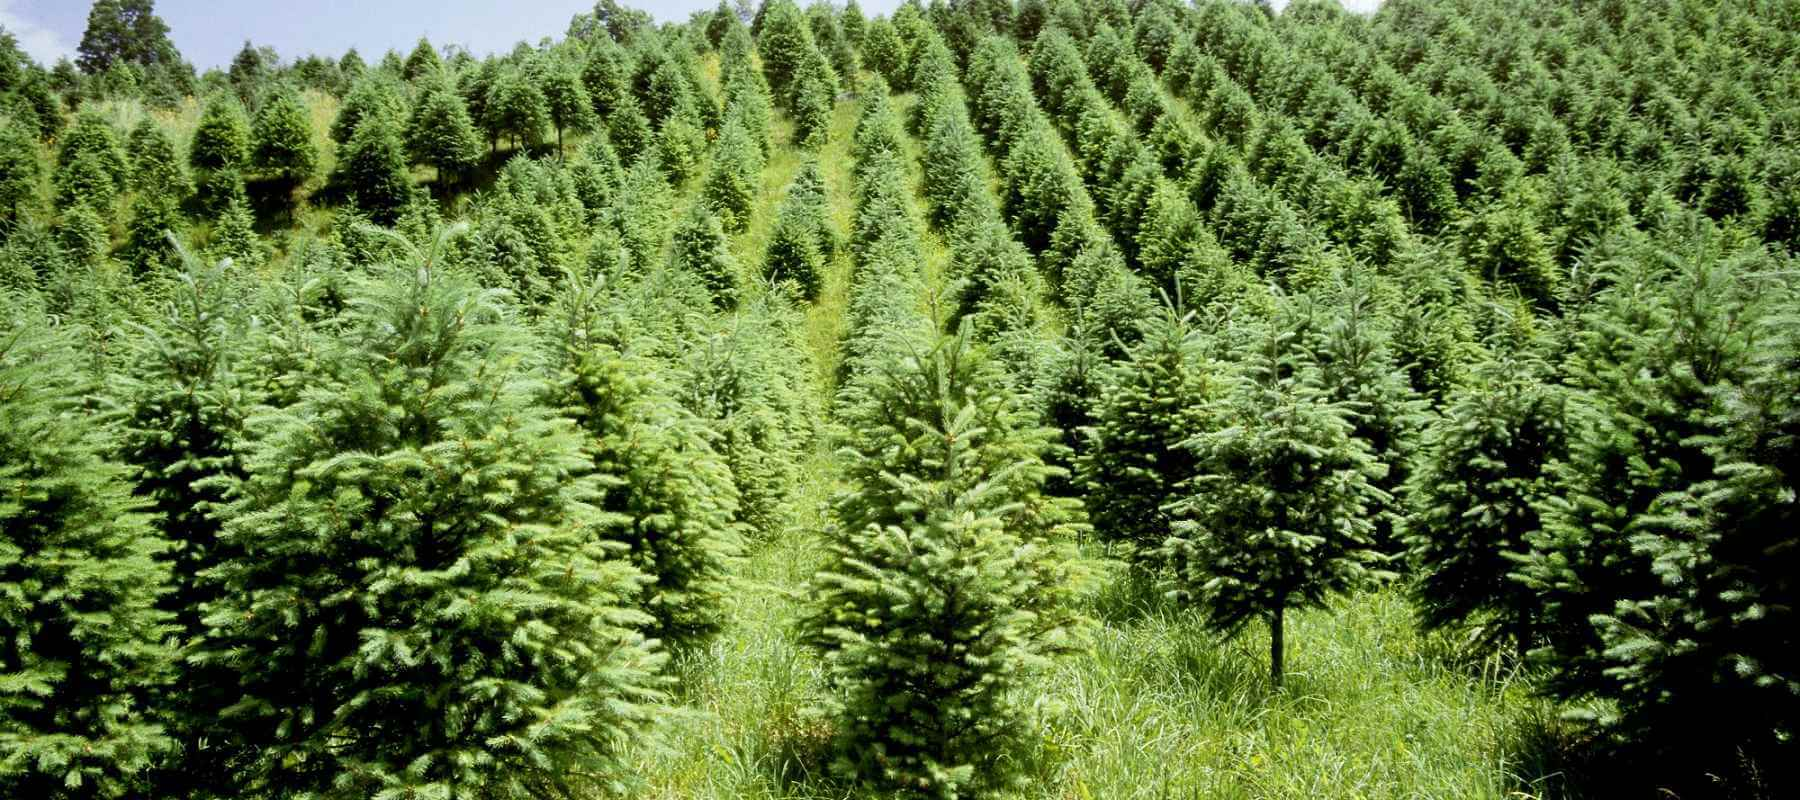 How Long Do Christmas Trees take to Grow?